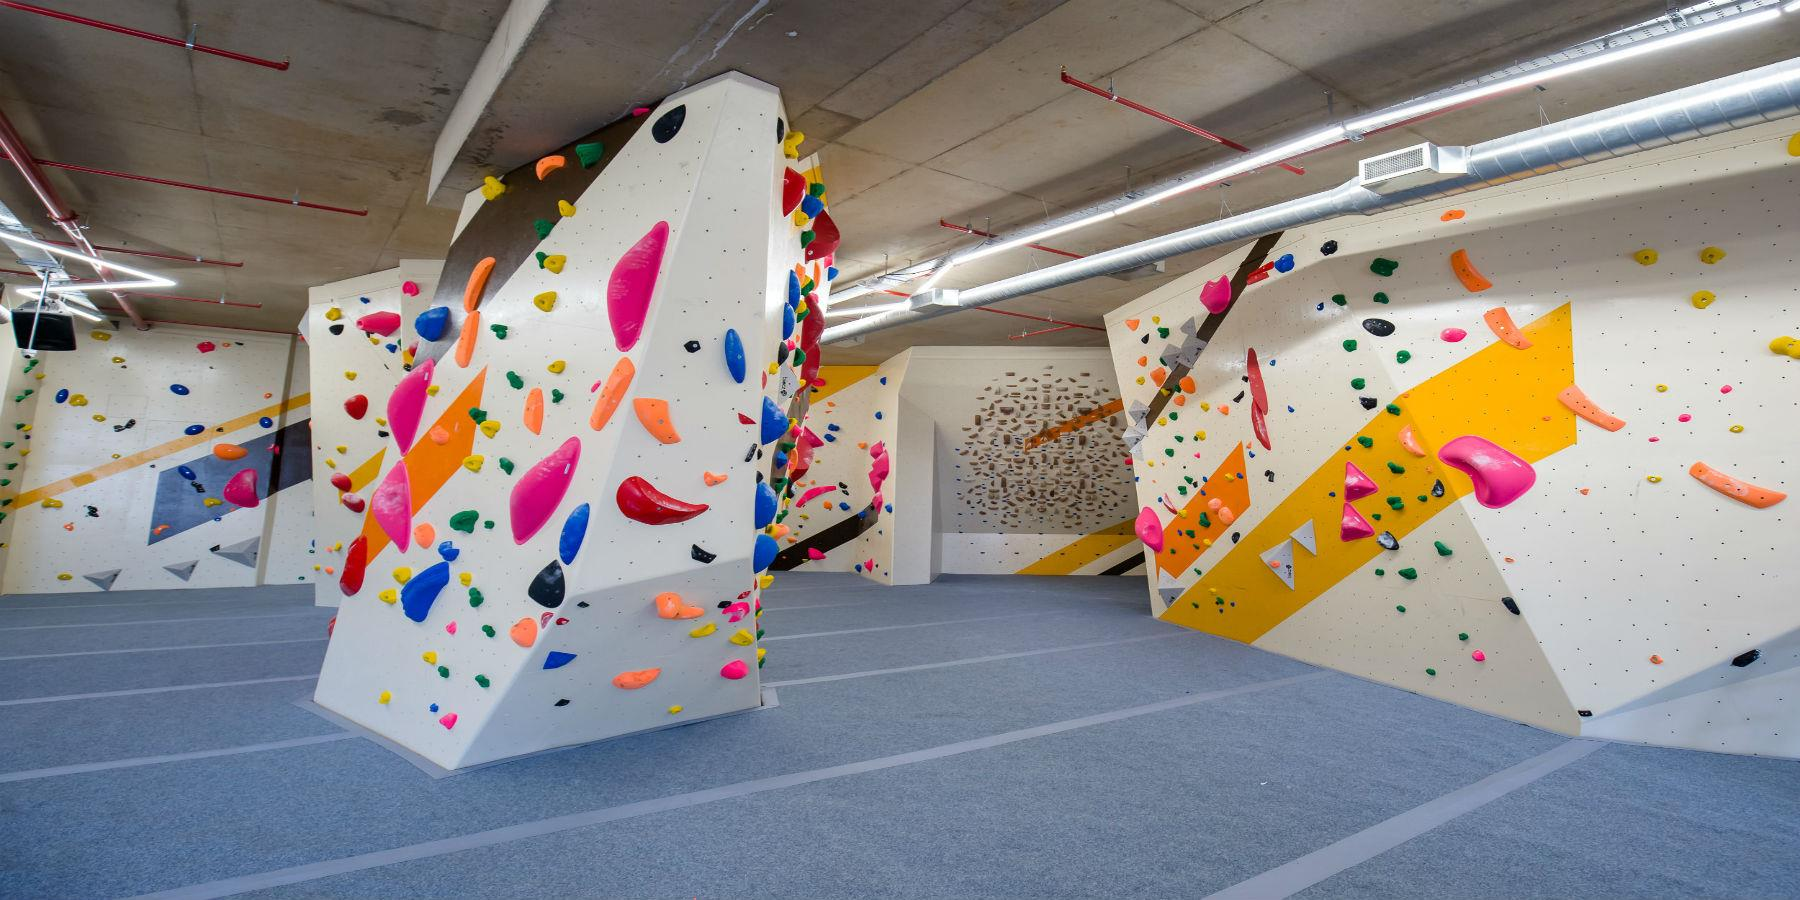 climbing wall of various shapes and sizes